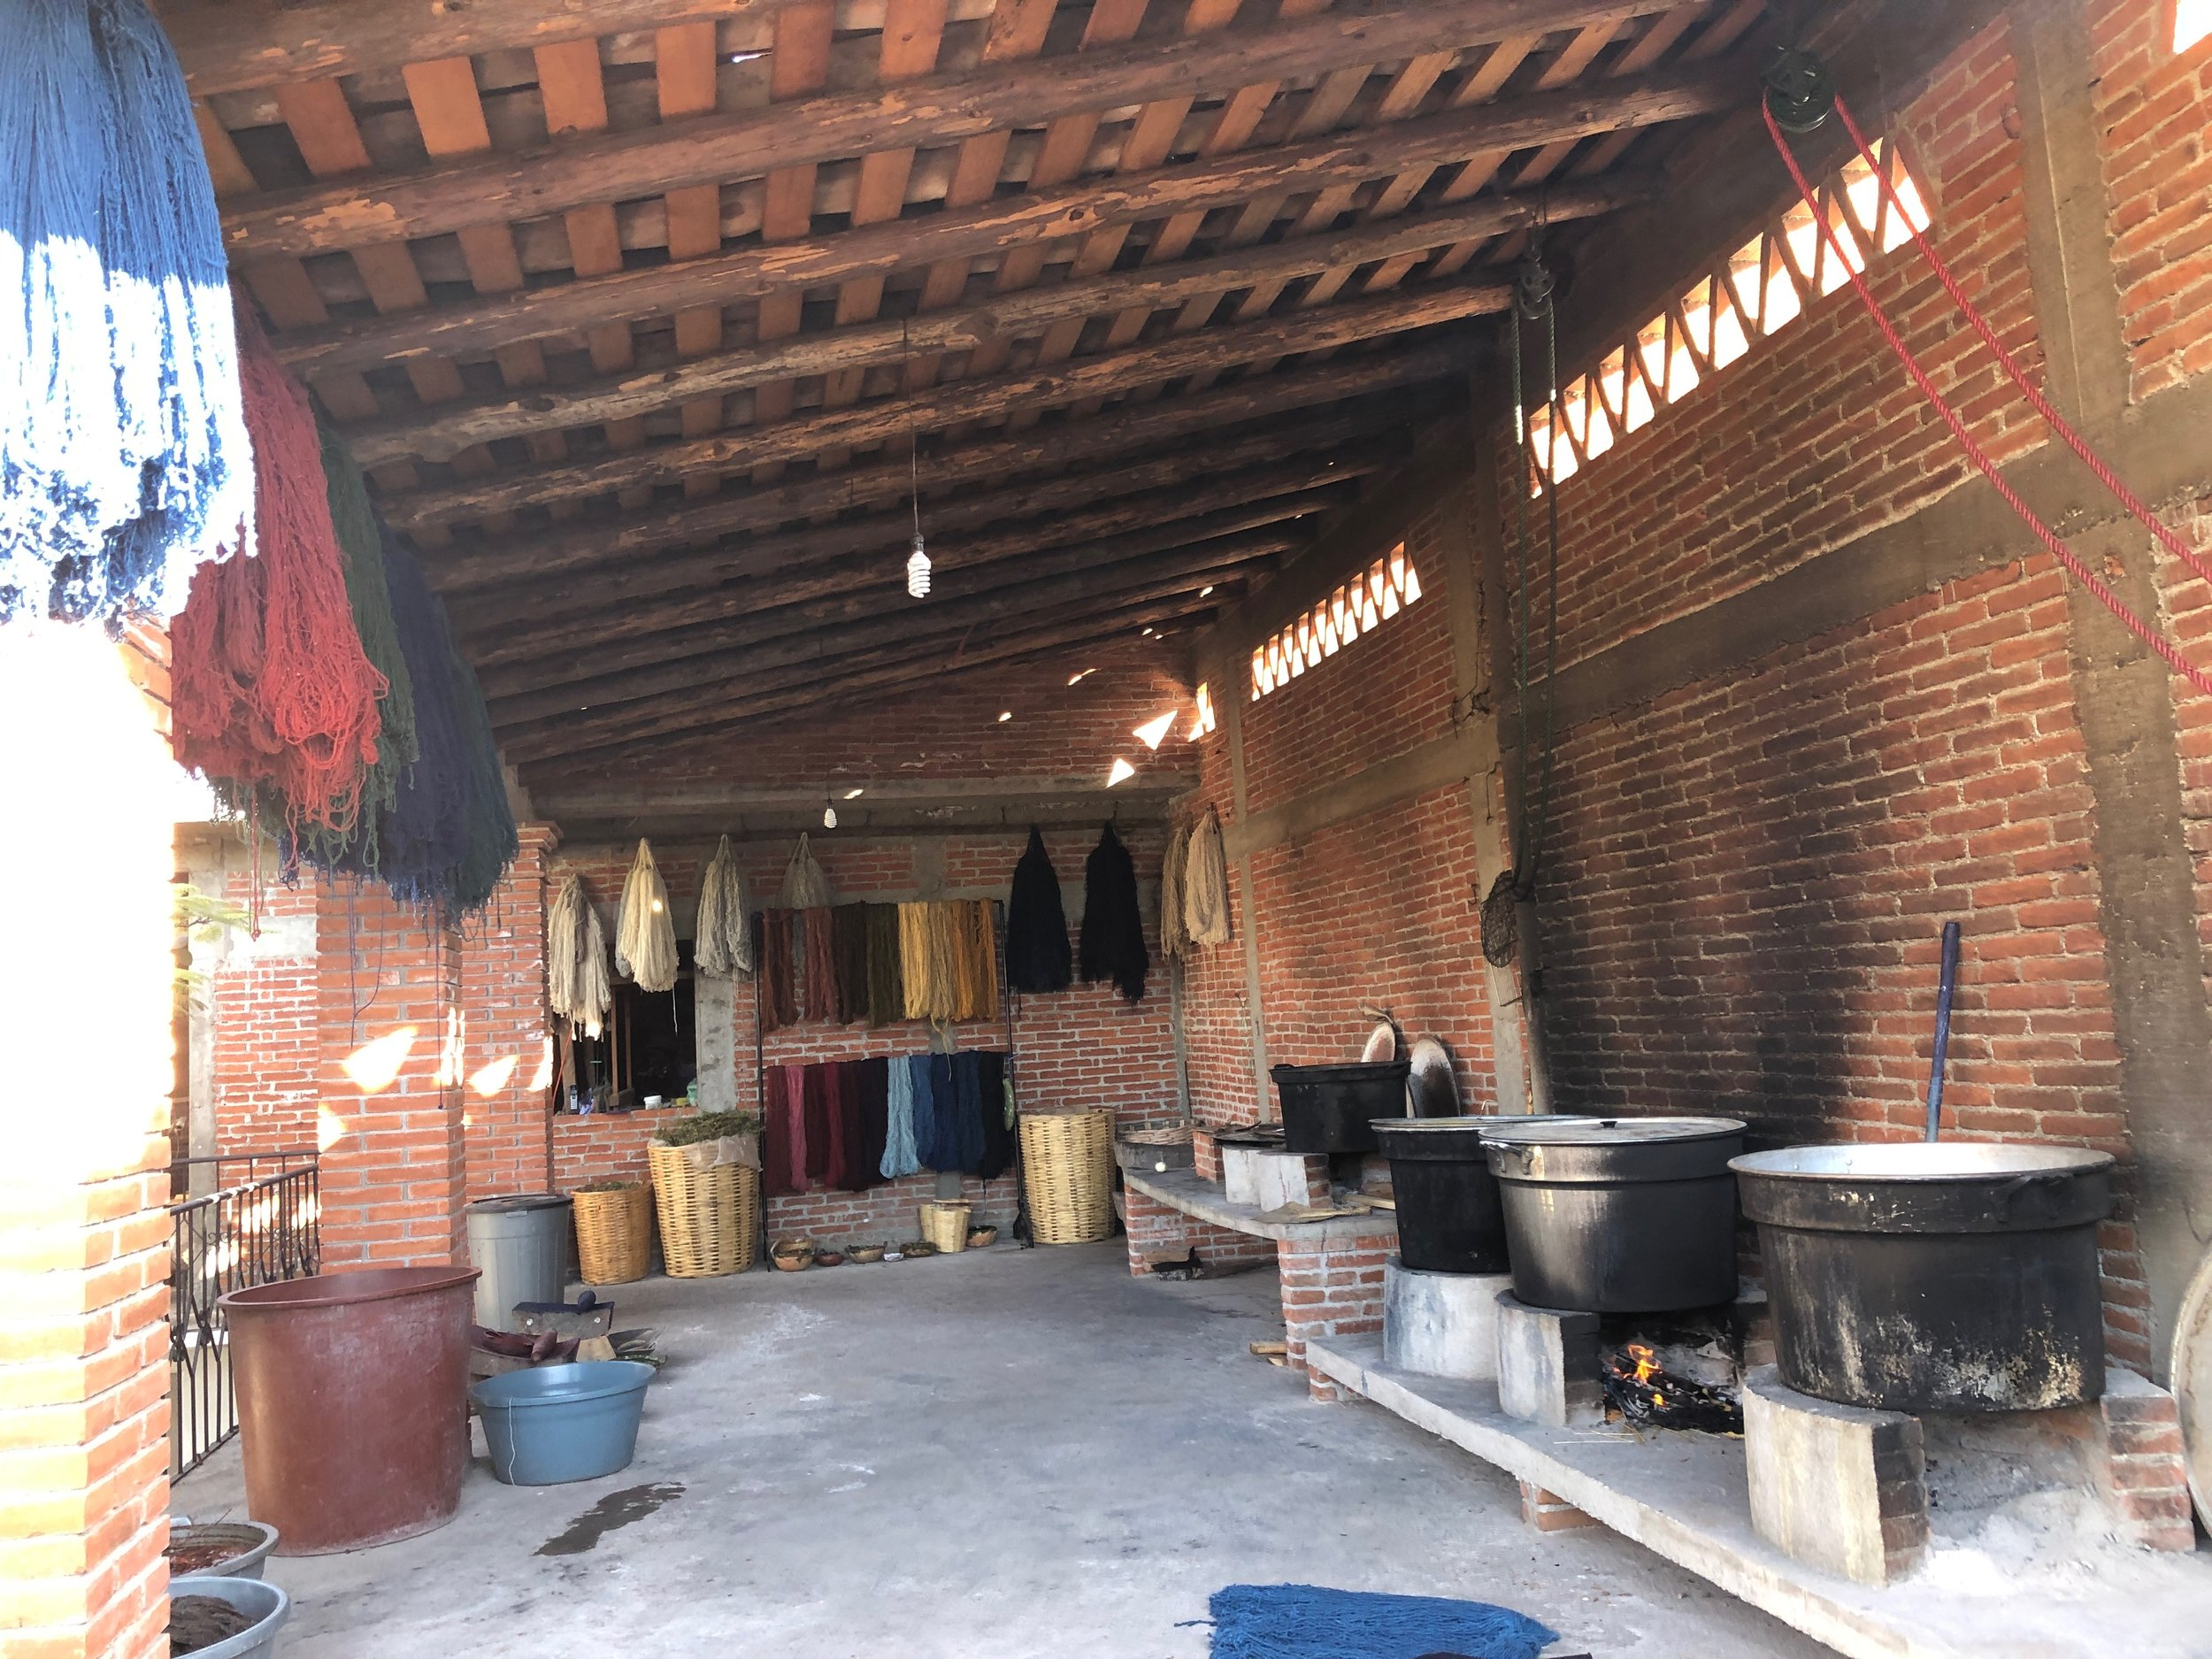 The area where the yarn is dyed and dried